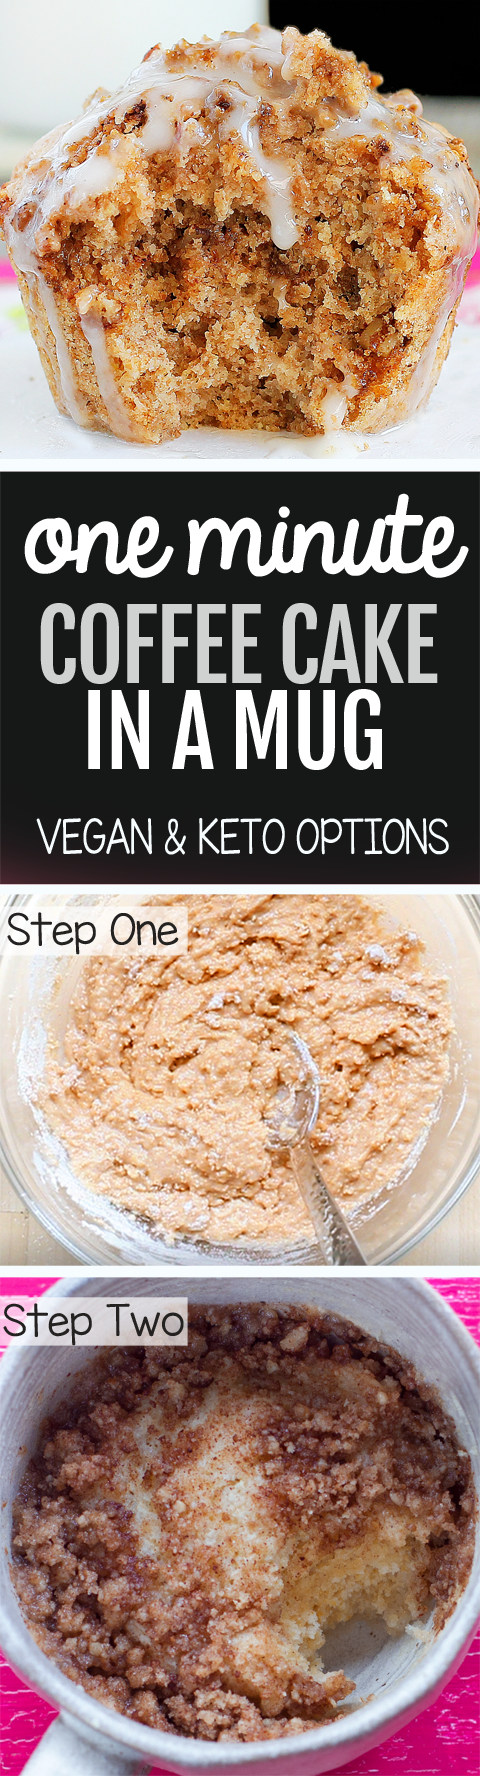 One Minute Coffee Mug Cake (Vegan, Keto Options)